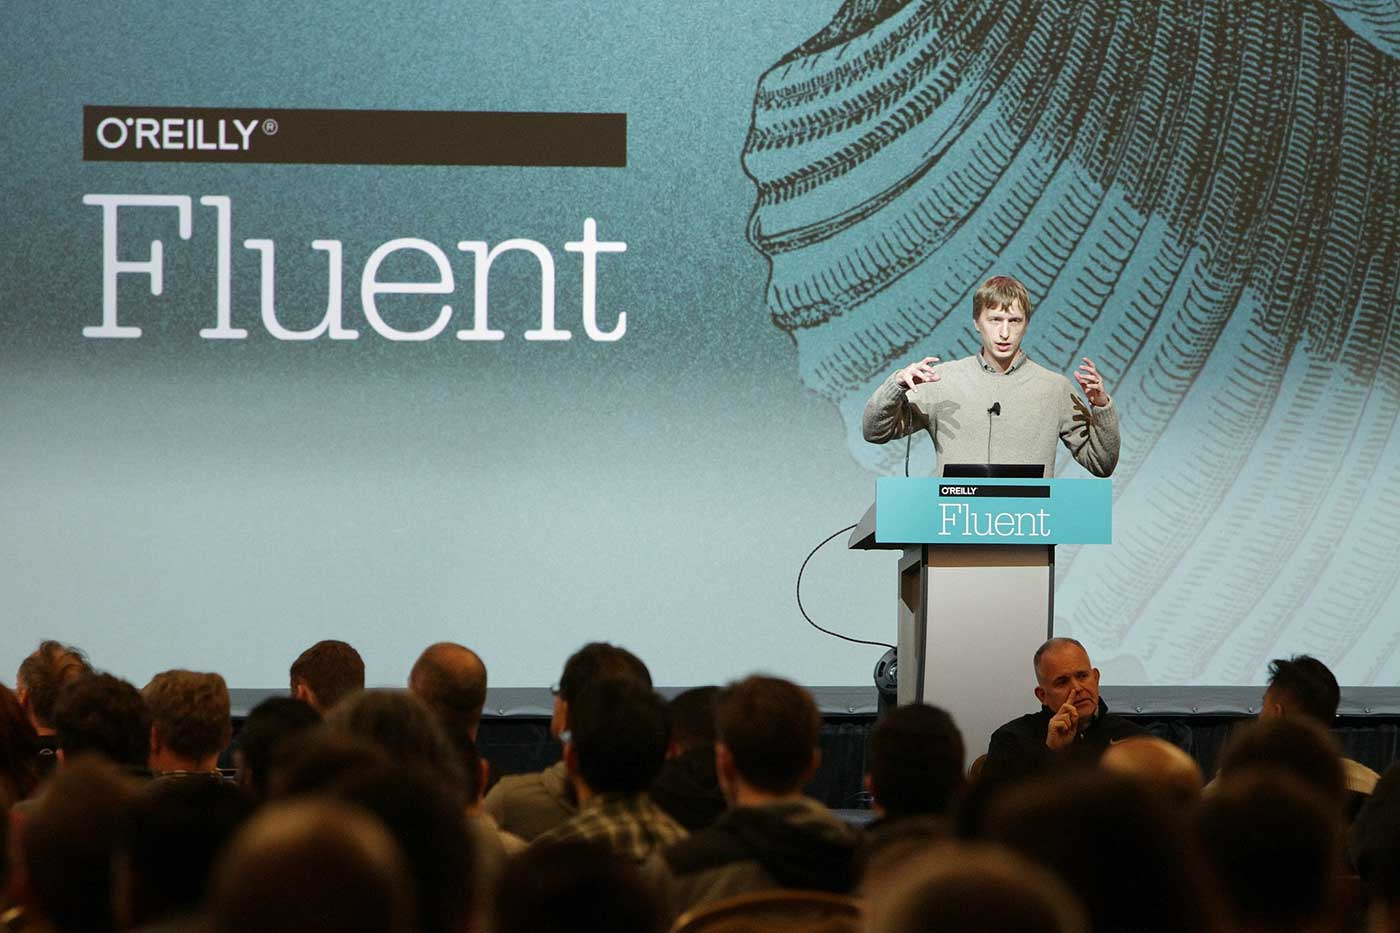 O'Reilly Fluent Conference in San Francisco 2016